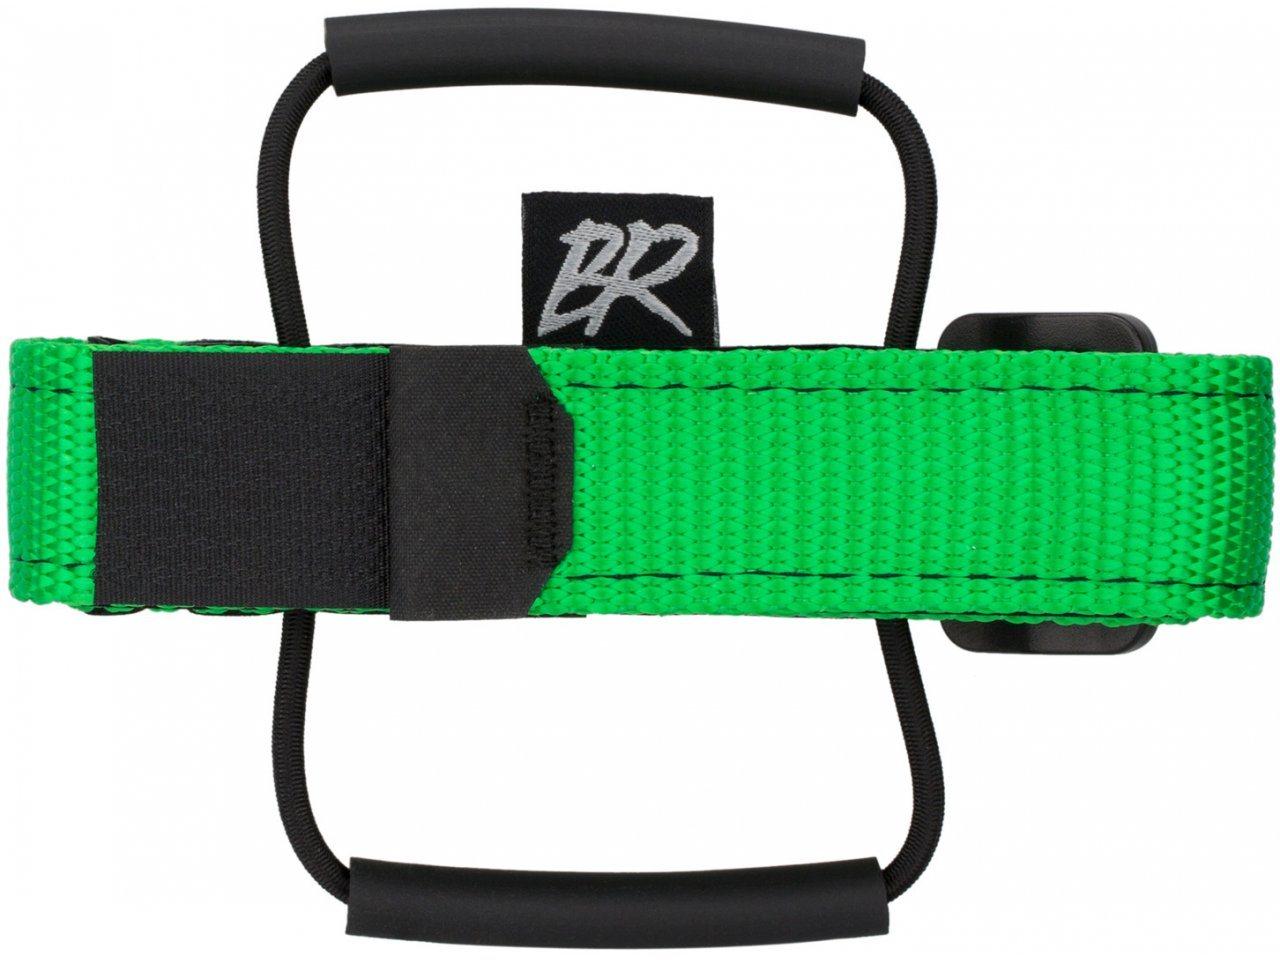 Los Muertos Backcountry Research Mutherload Frame Strap